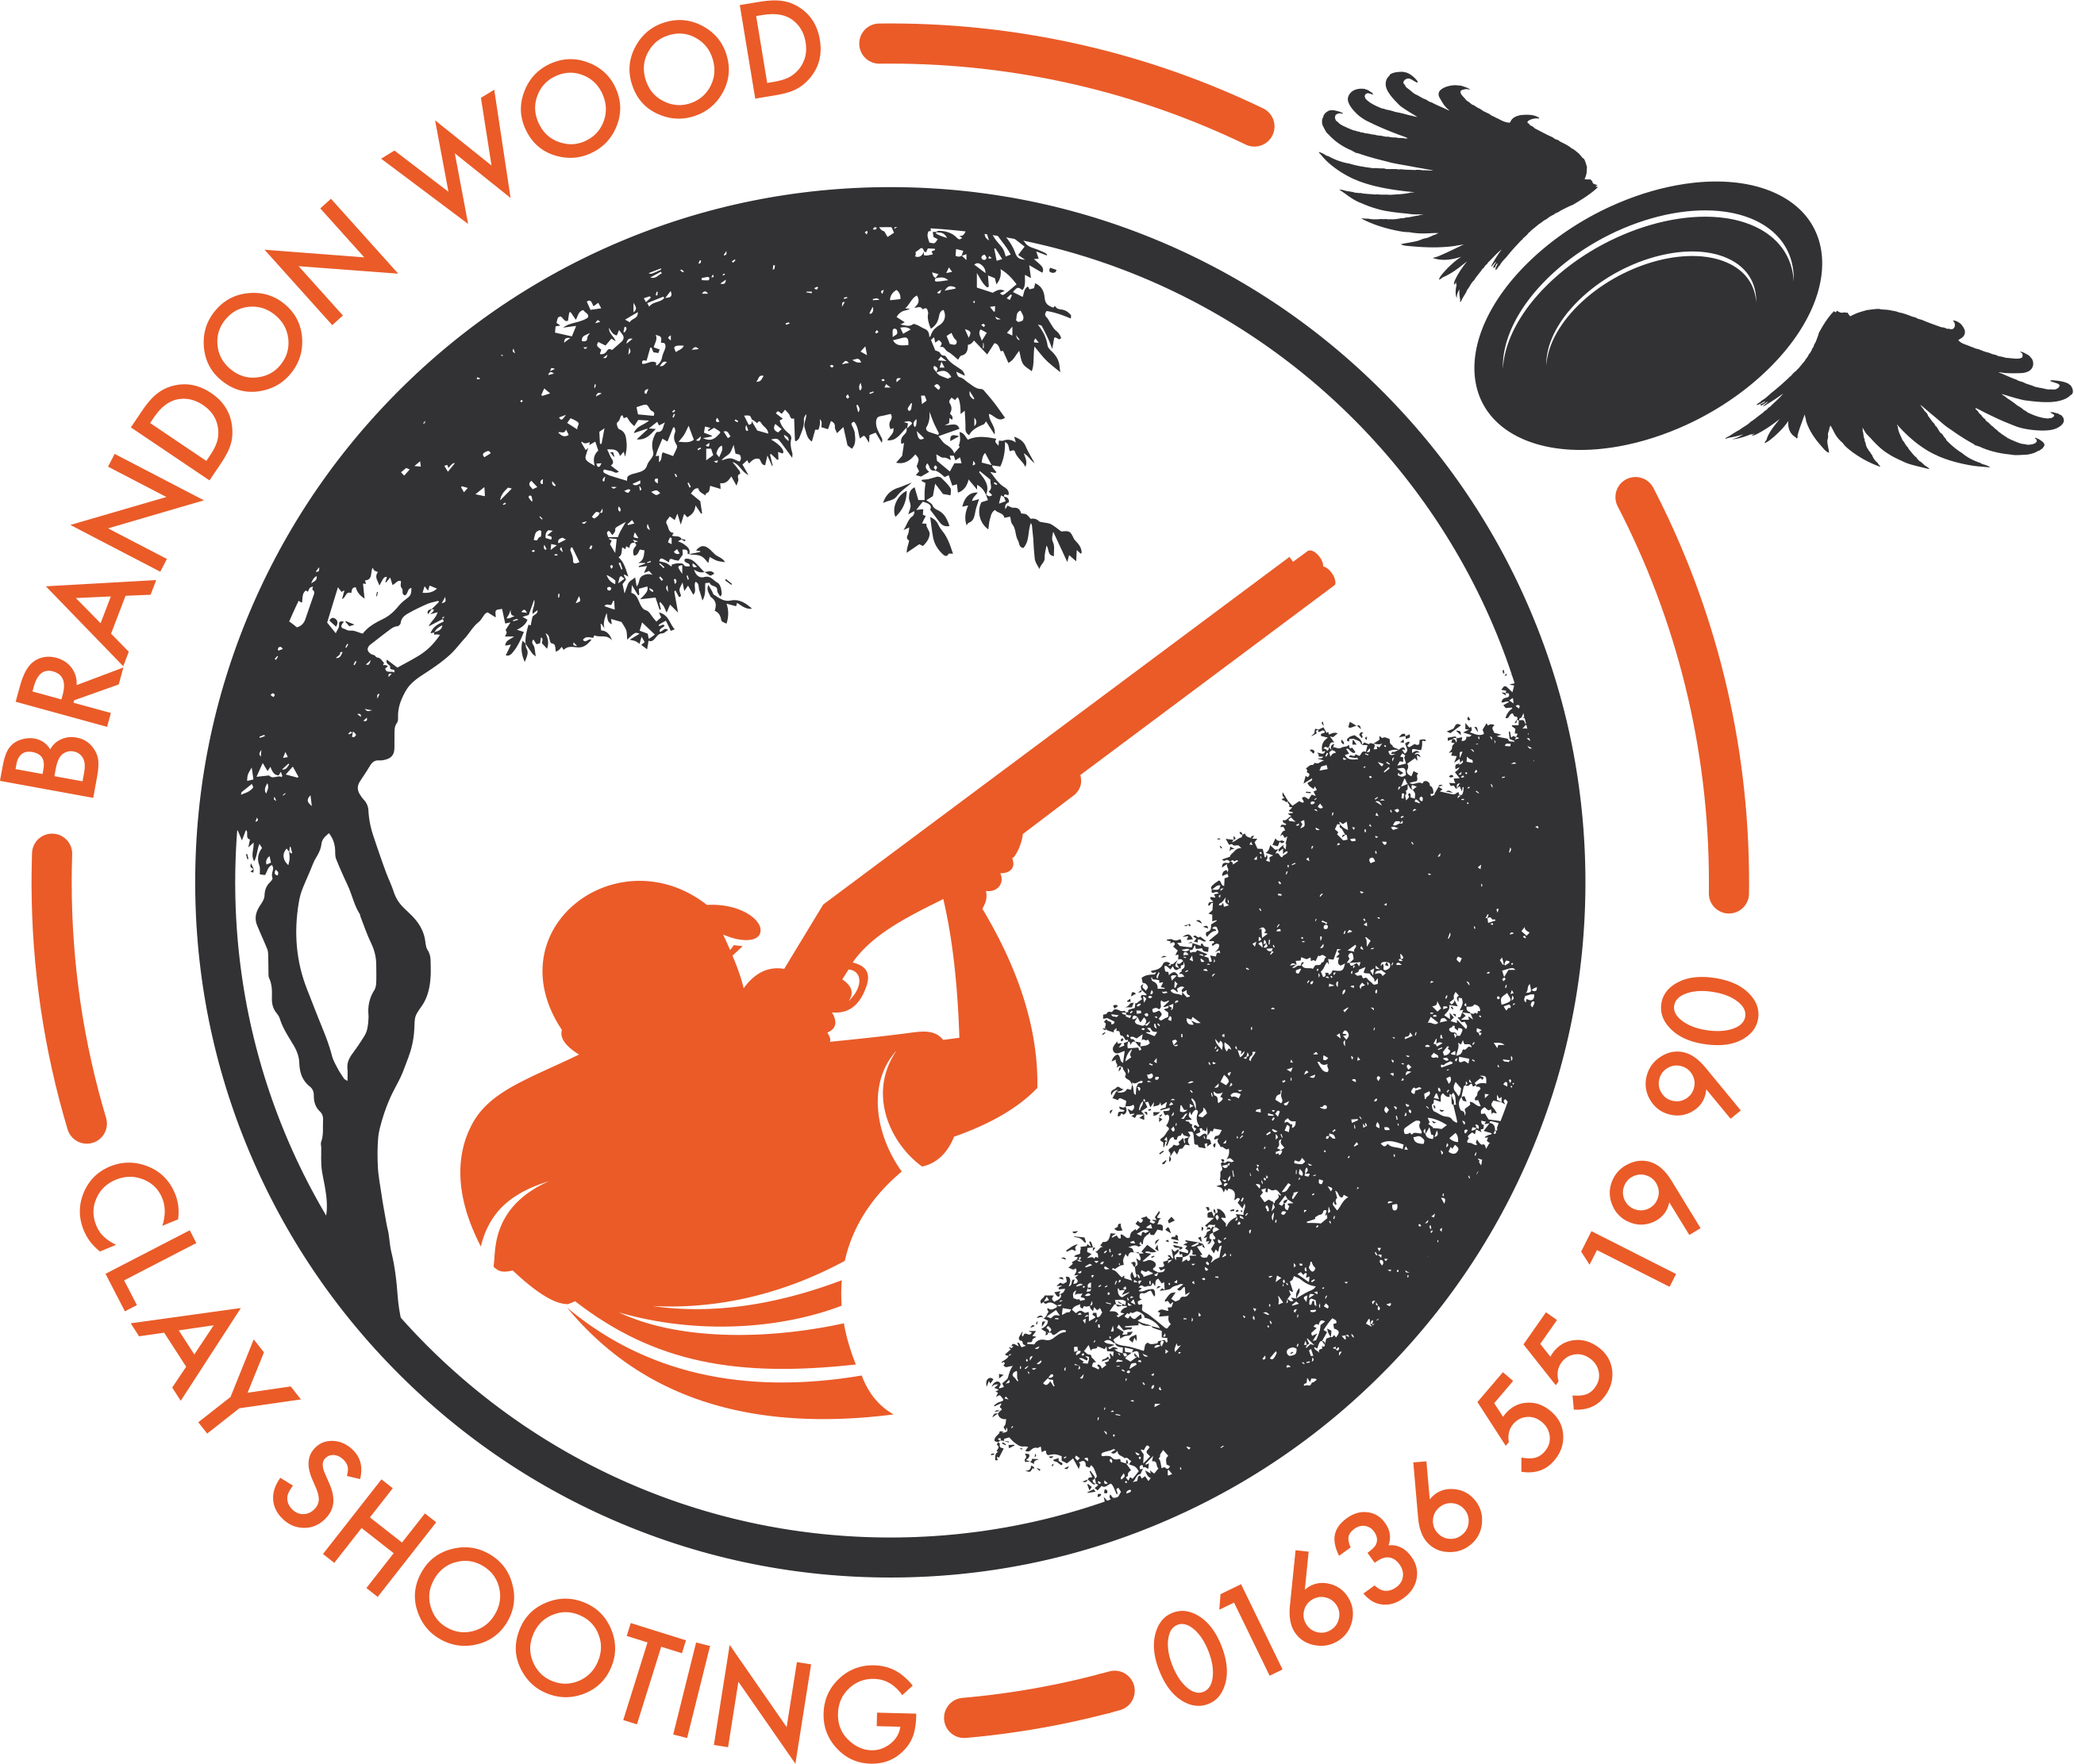 Brandon Wood Clay Shooting